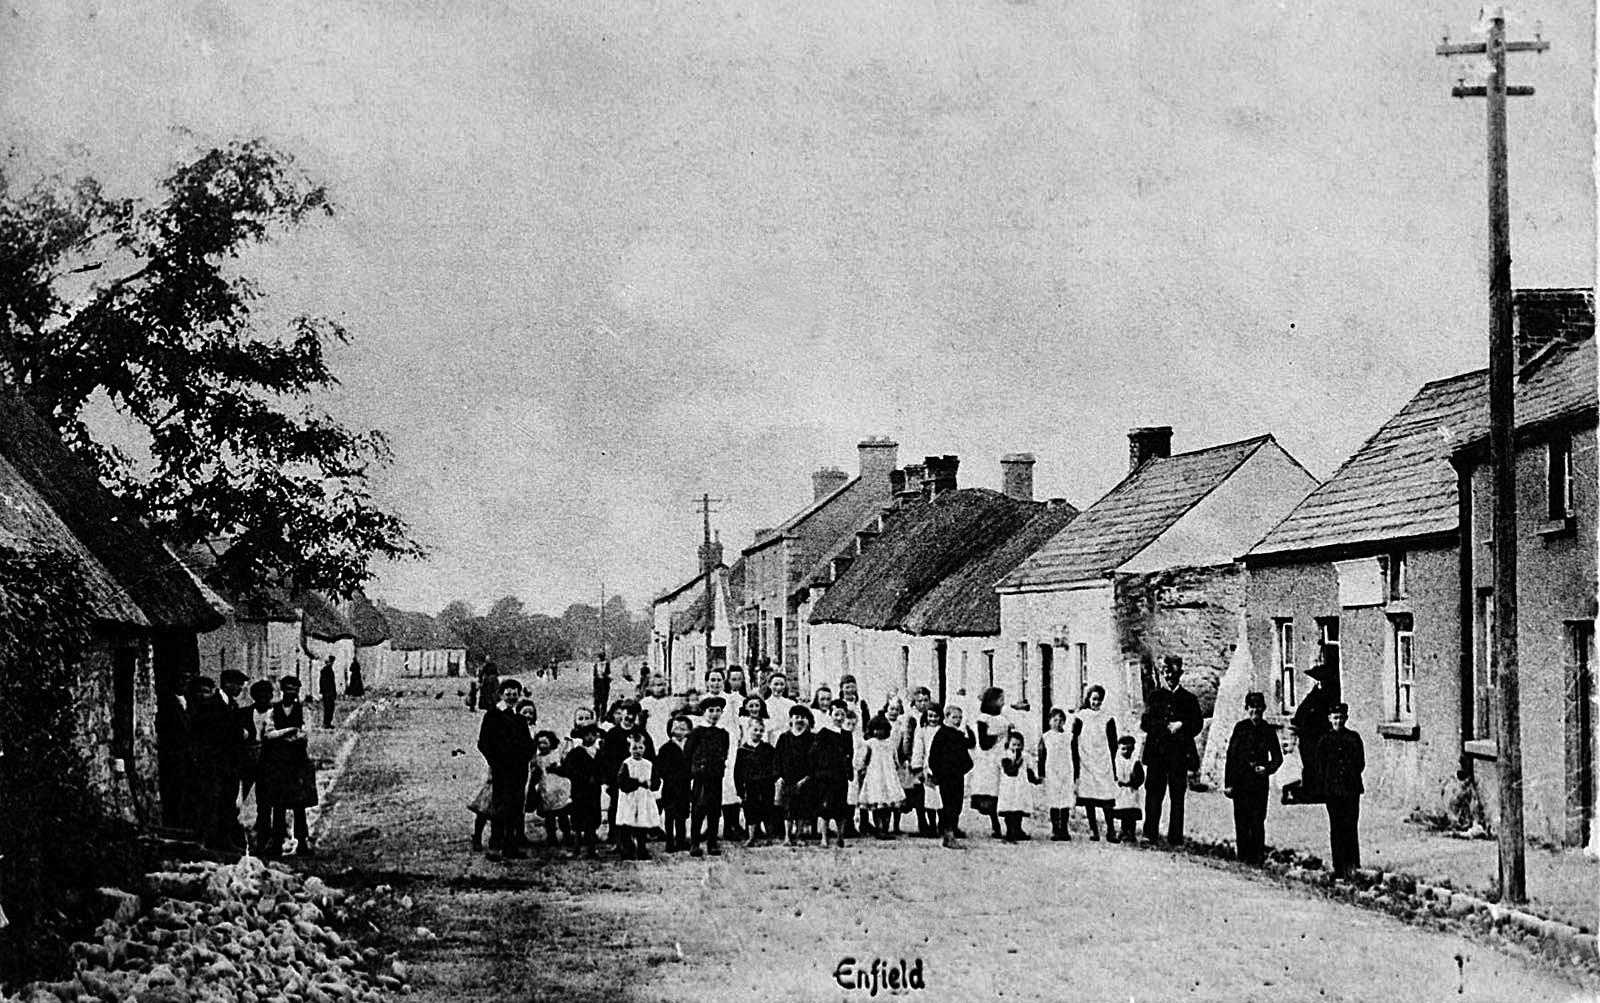 Pupils of Enfield National School and Residents in early 1900's